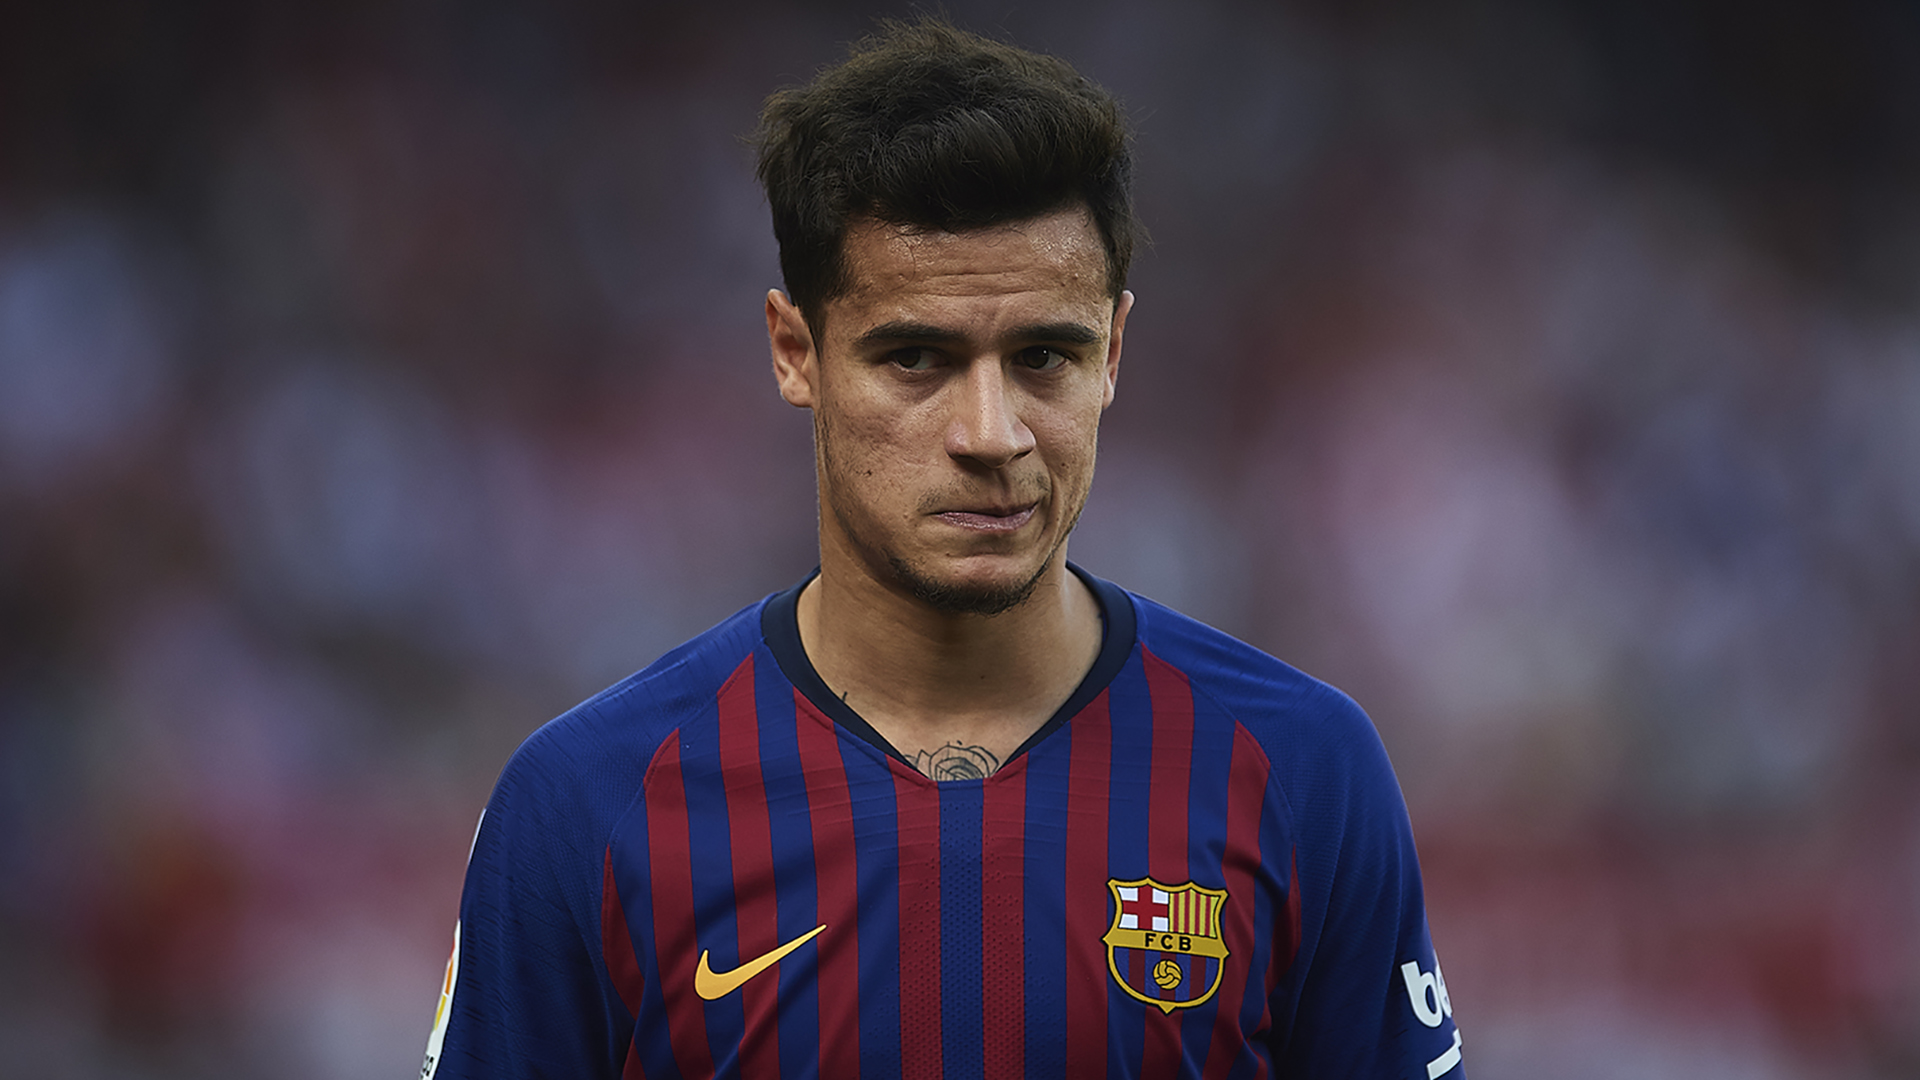 'Coutinho would face more pressure at Liverpool' - Rivaldo urges Barcelona star to consider his options carefully